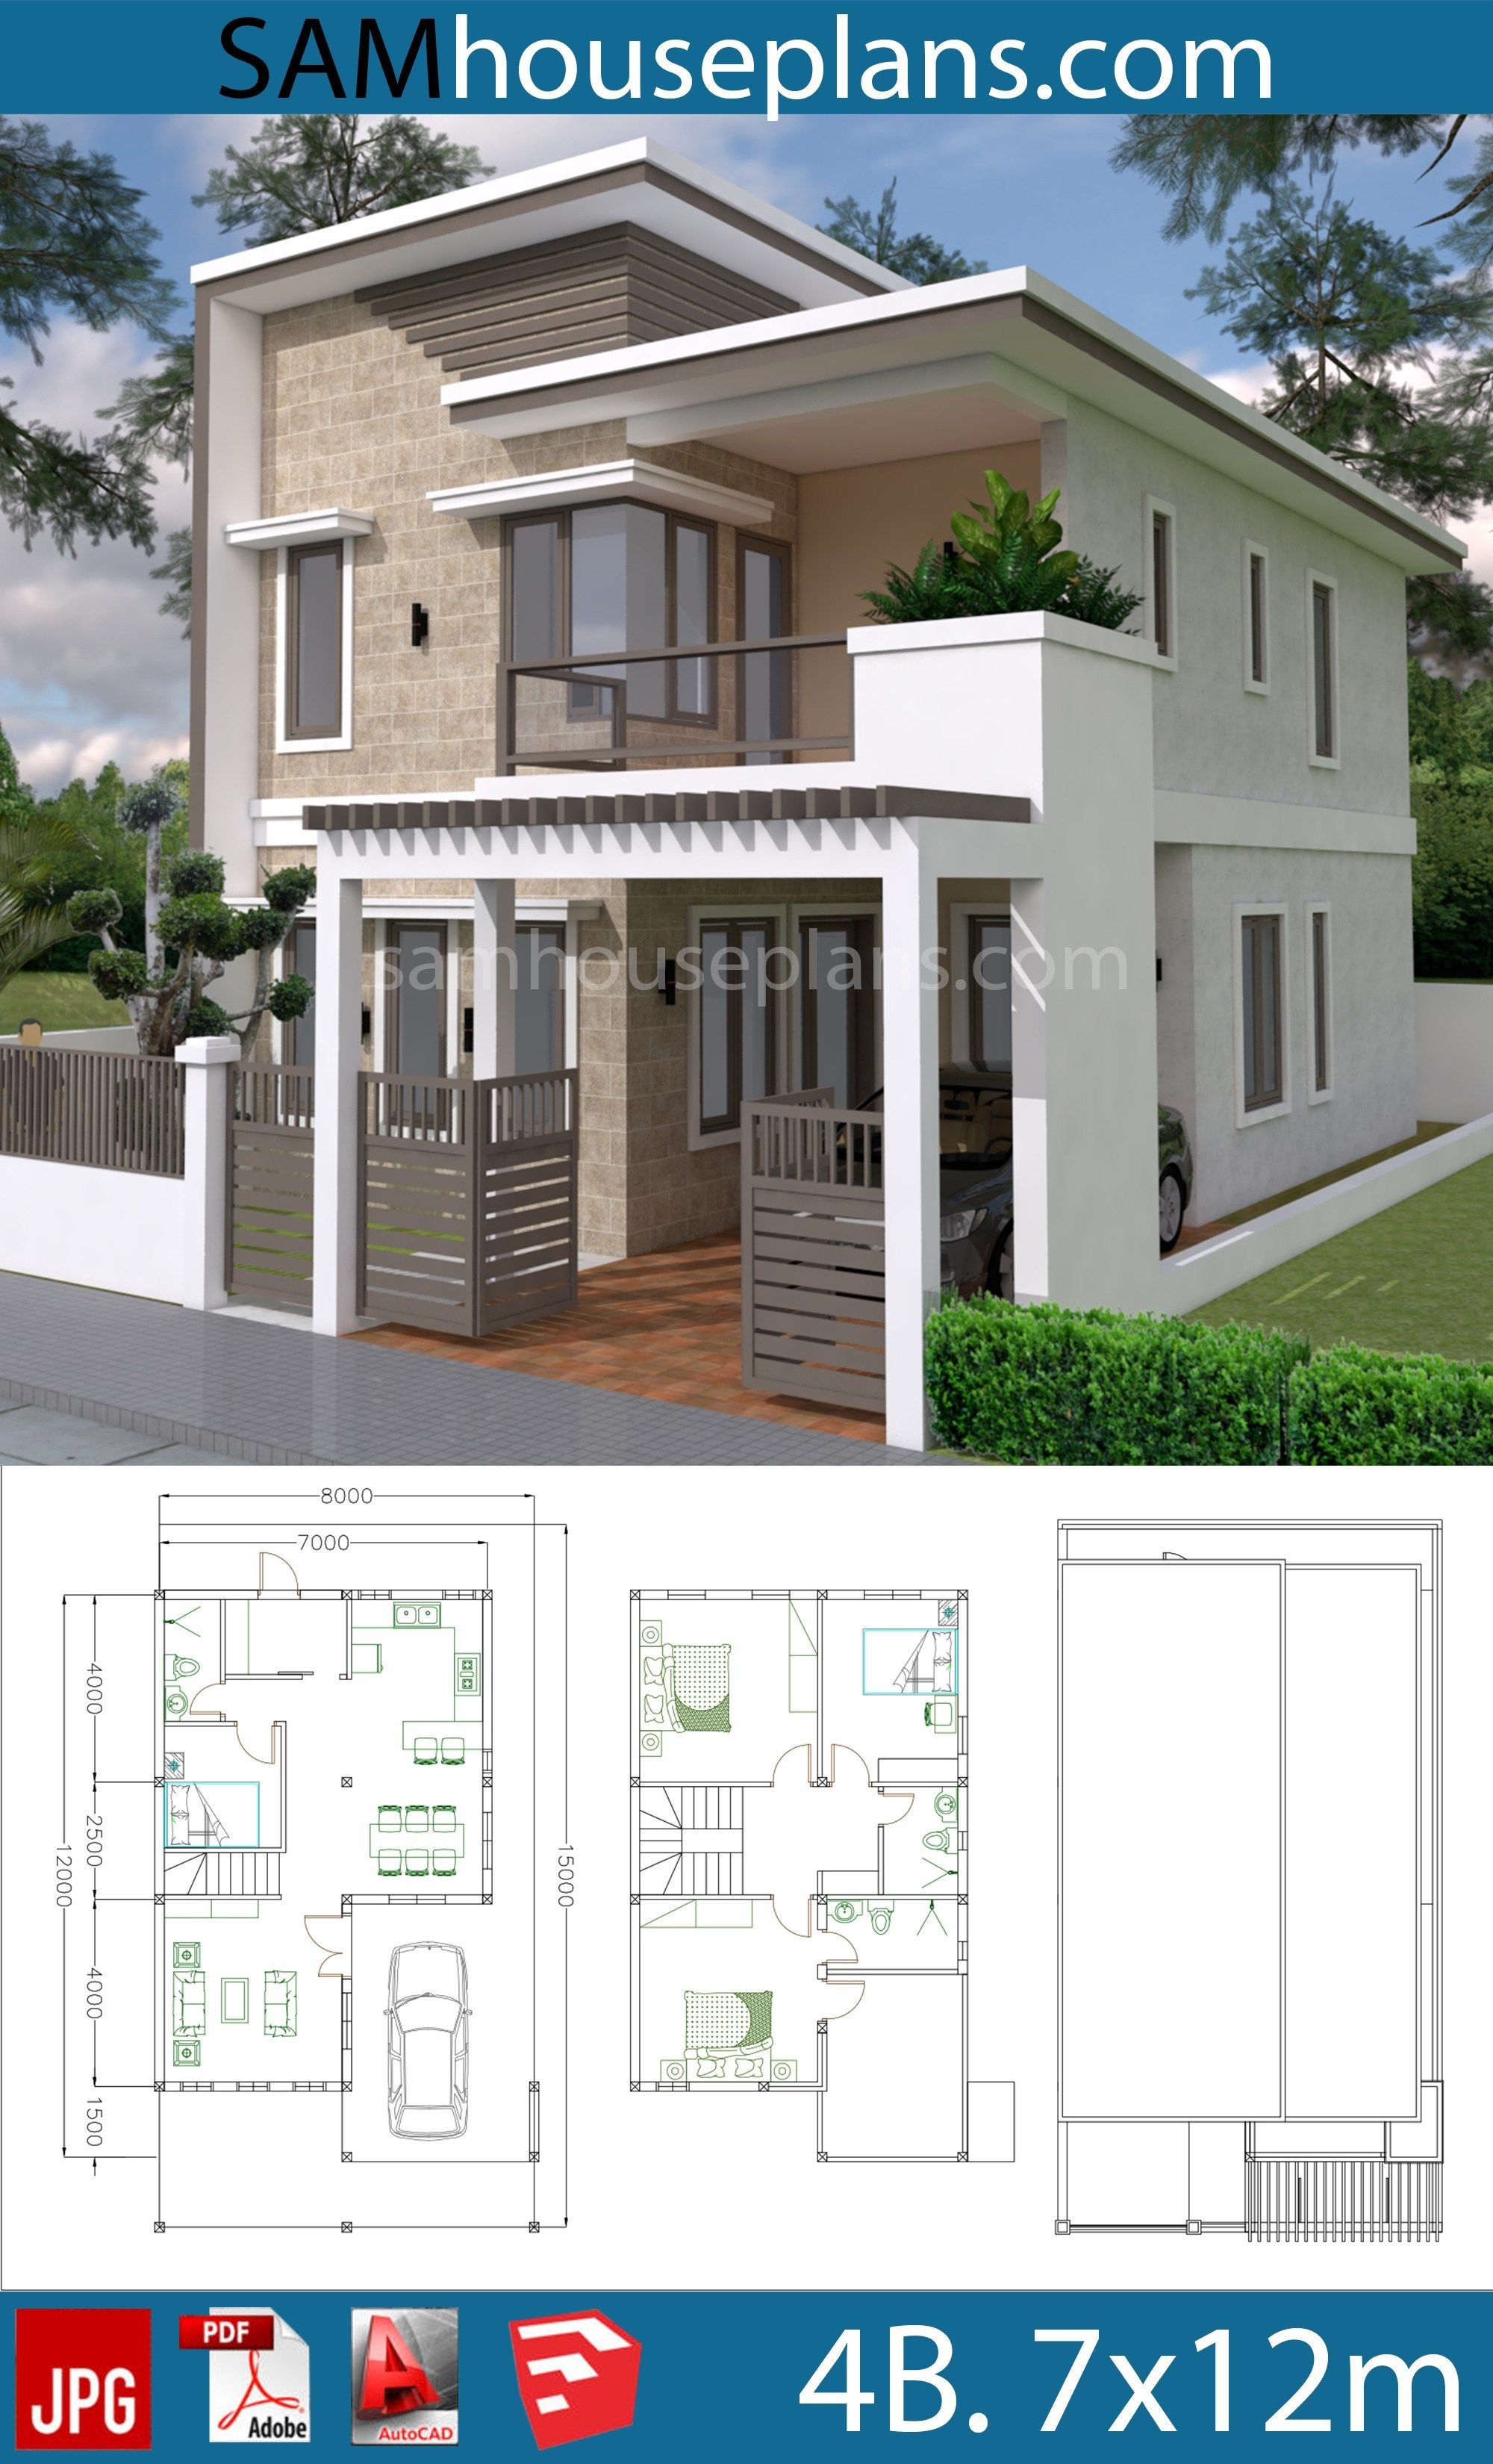 House Plans 7x12m With 4 Bedrooms Plot 8x15 Sam House Plans Bungalow House Design Minimalist House Design House Layouts